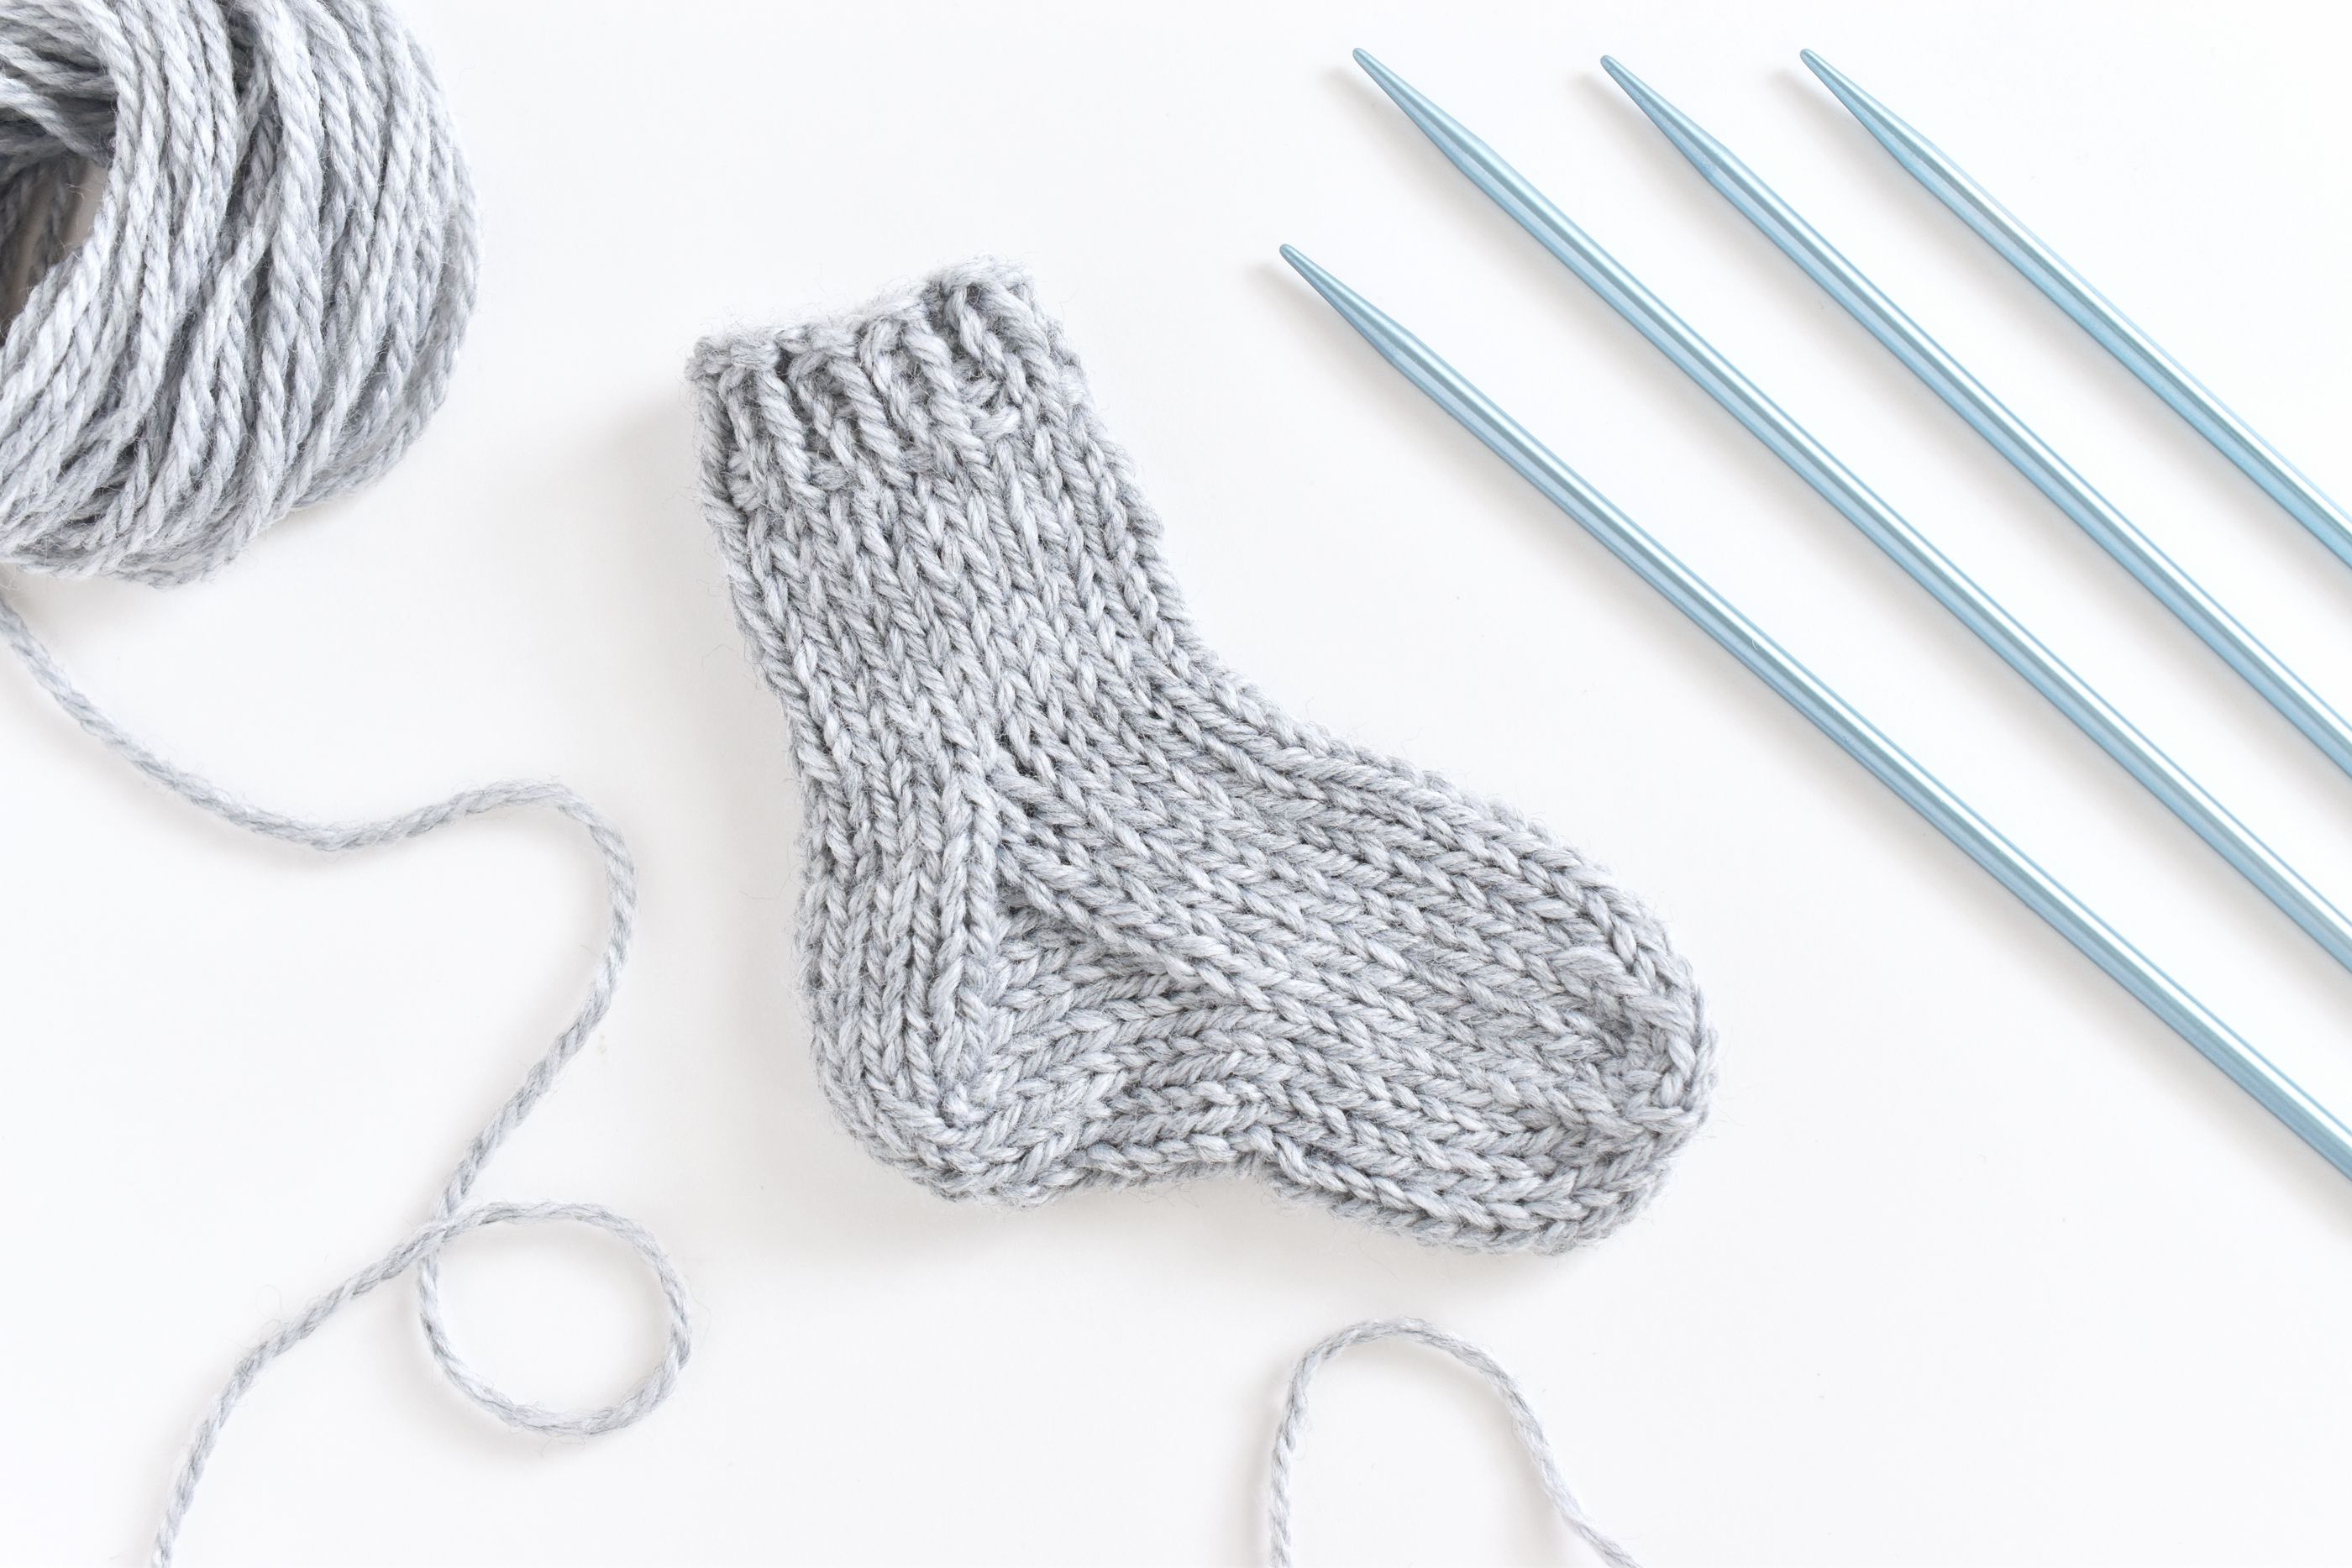 Knitting Patterns For Socks Knit A Small Sock With A Step Step Practice Pattern